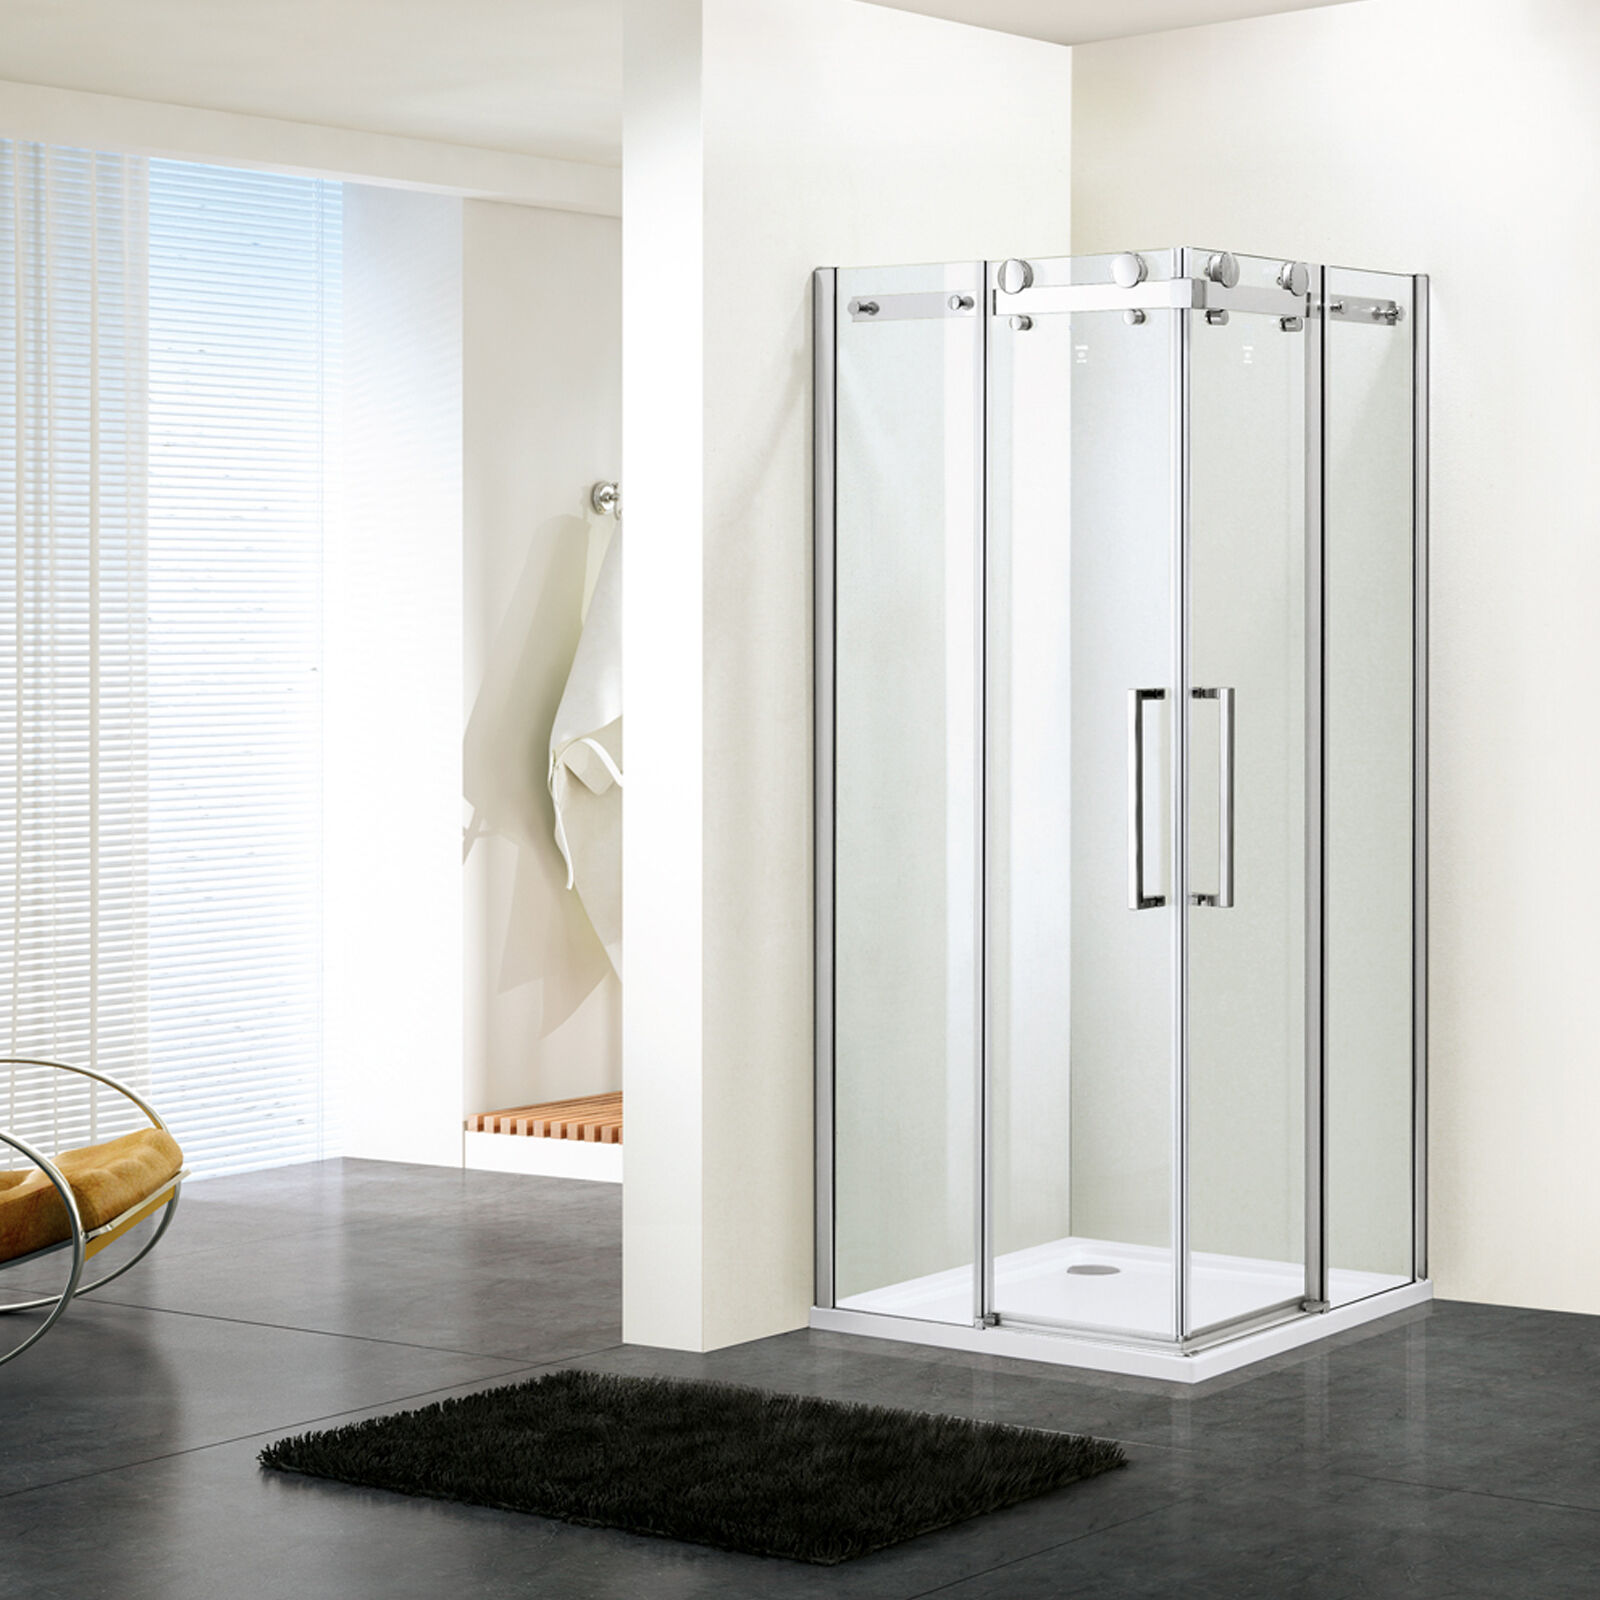 SHOWER ENCLOSURE ROOM Frameless Glass Corner Sliding Doors Bathroom ...